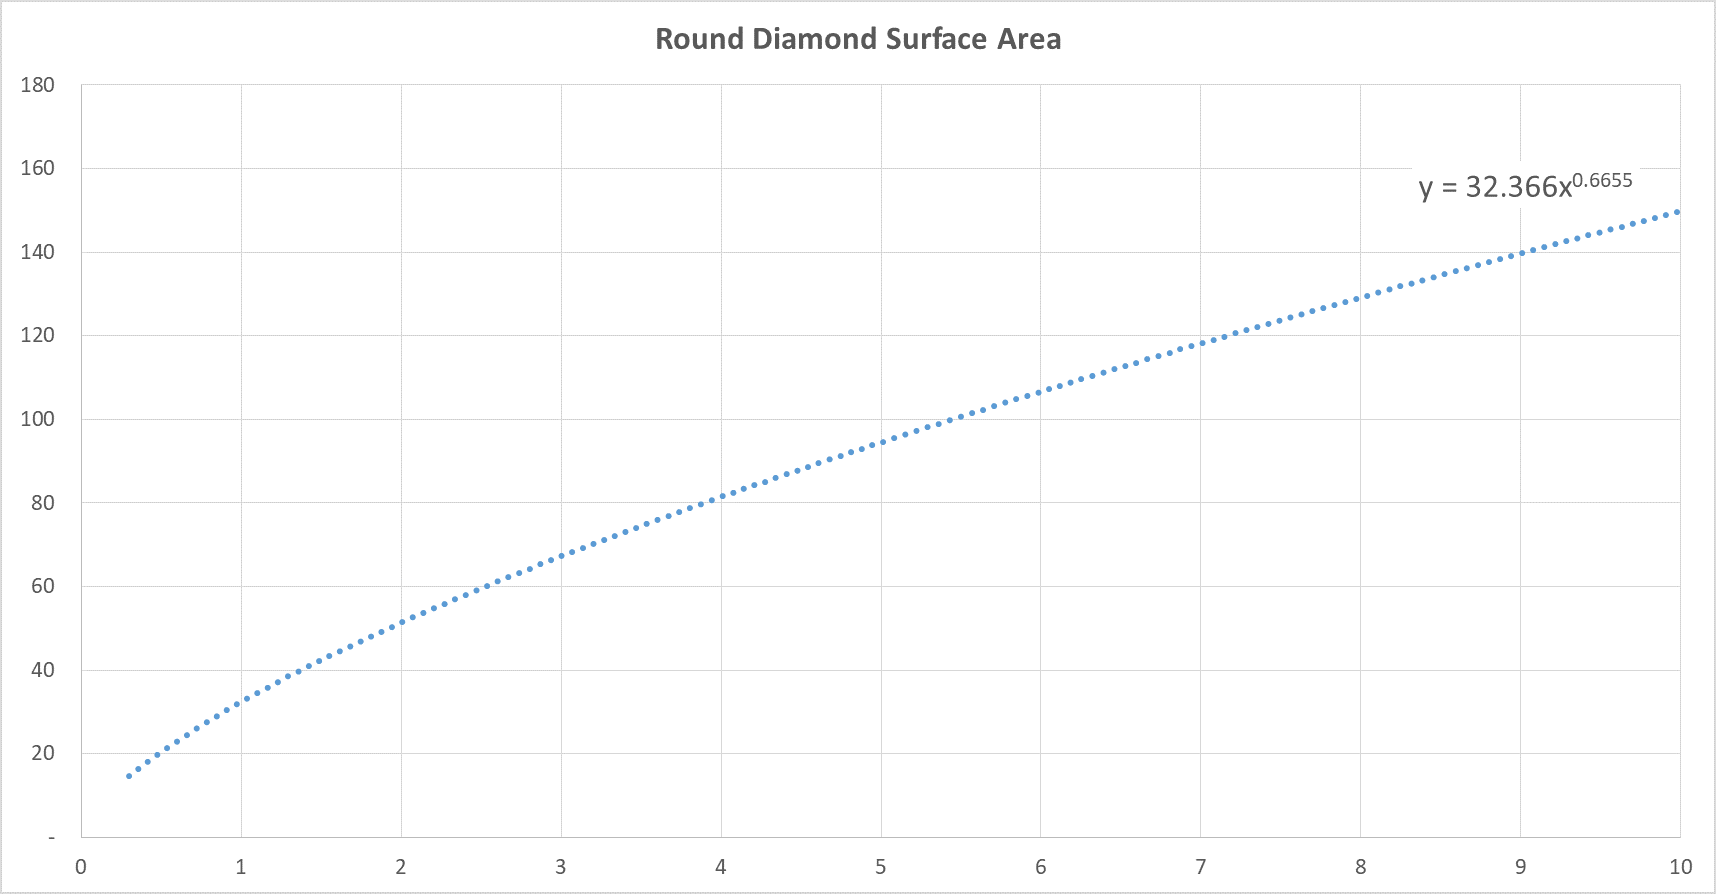 Round Diamond Carat Weight Versus Surface Area Chart